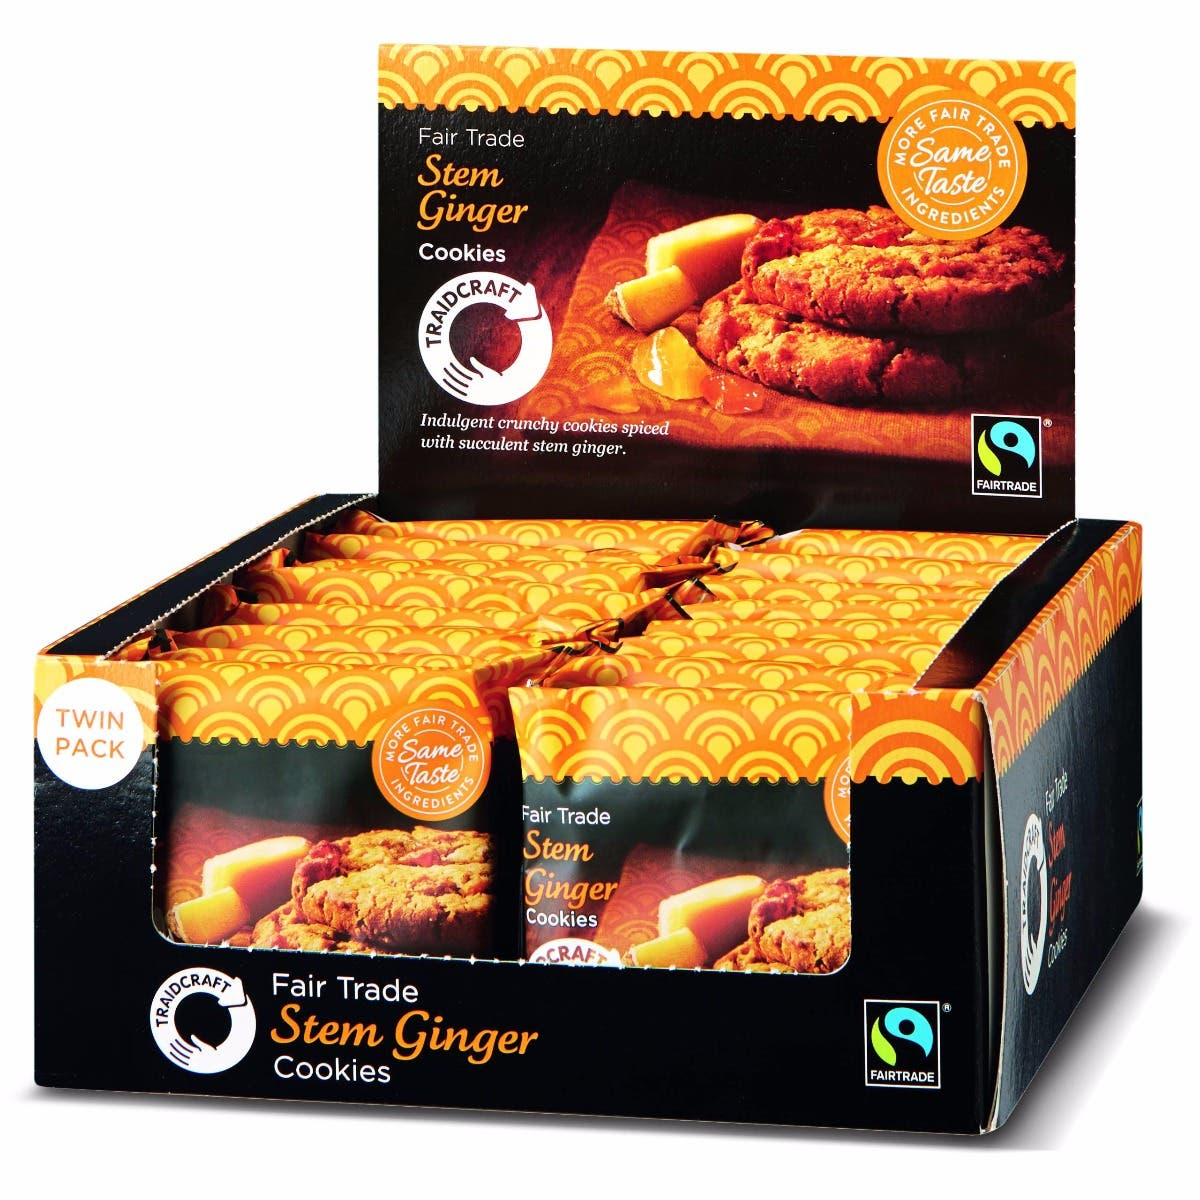 Traidcraft Stem Ginger Cookies Display Box (16x45g)